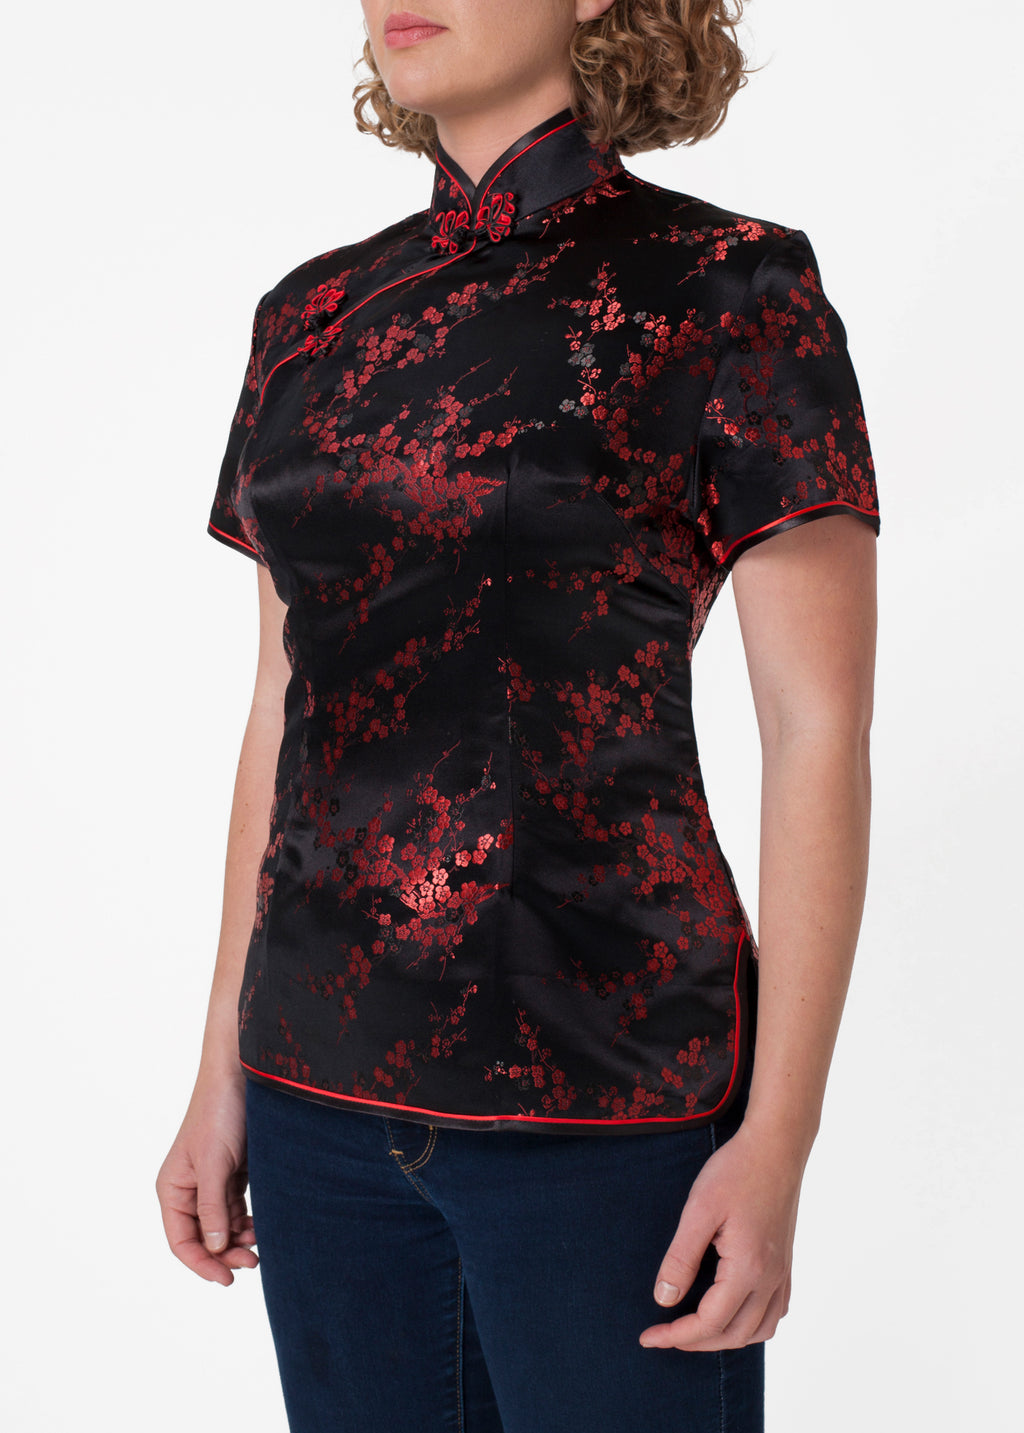 Traditional Chinese blouse in Cheongsam or Qipao style with distinctive Chinese features of mandarin collar, hand stitched flower and knot frog fastenings and side zip. Manufactured in authentic high quality silk/rayon brocade in elegant black with red cherry blossom design - a symbol of female beauty and love.